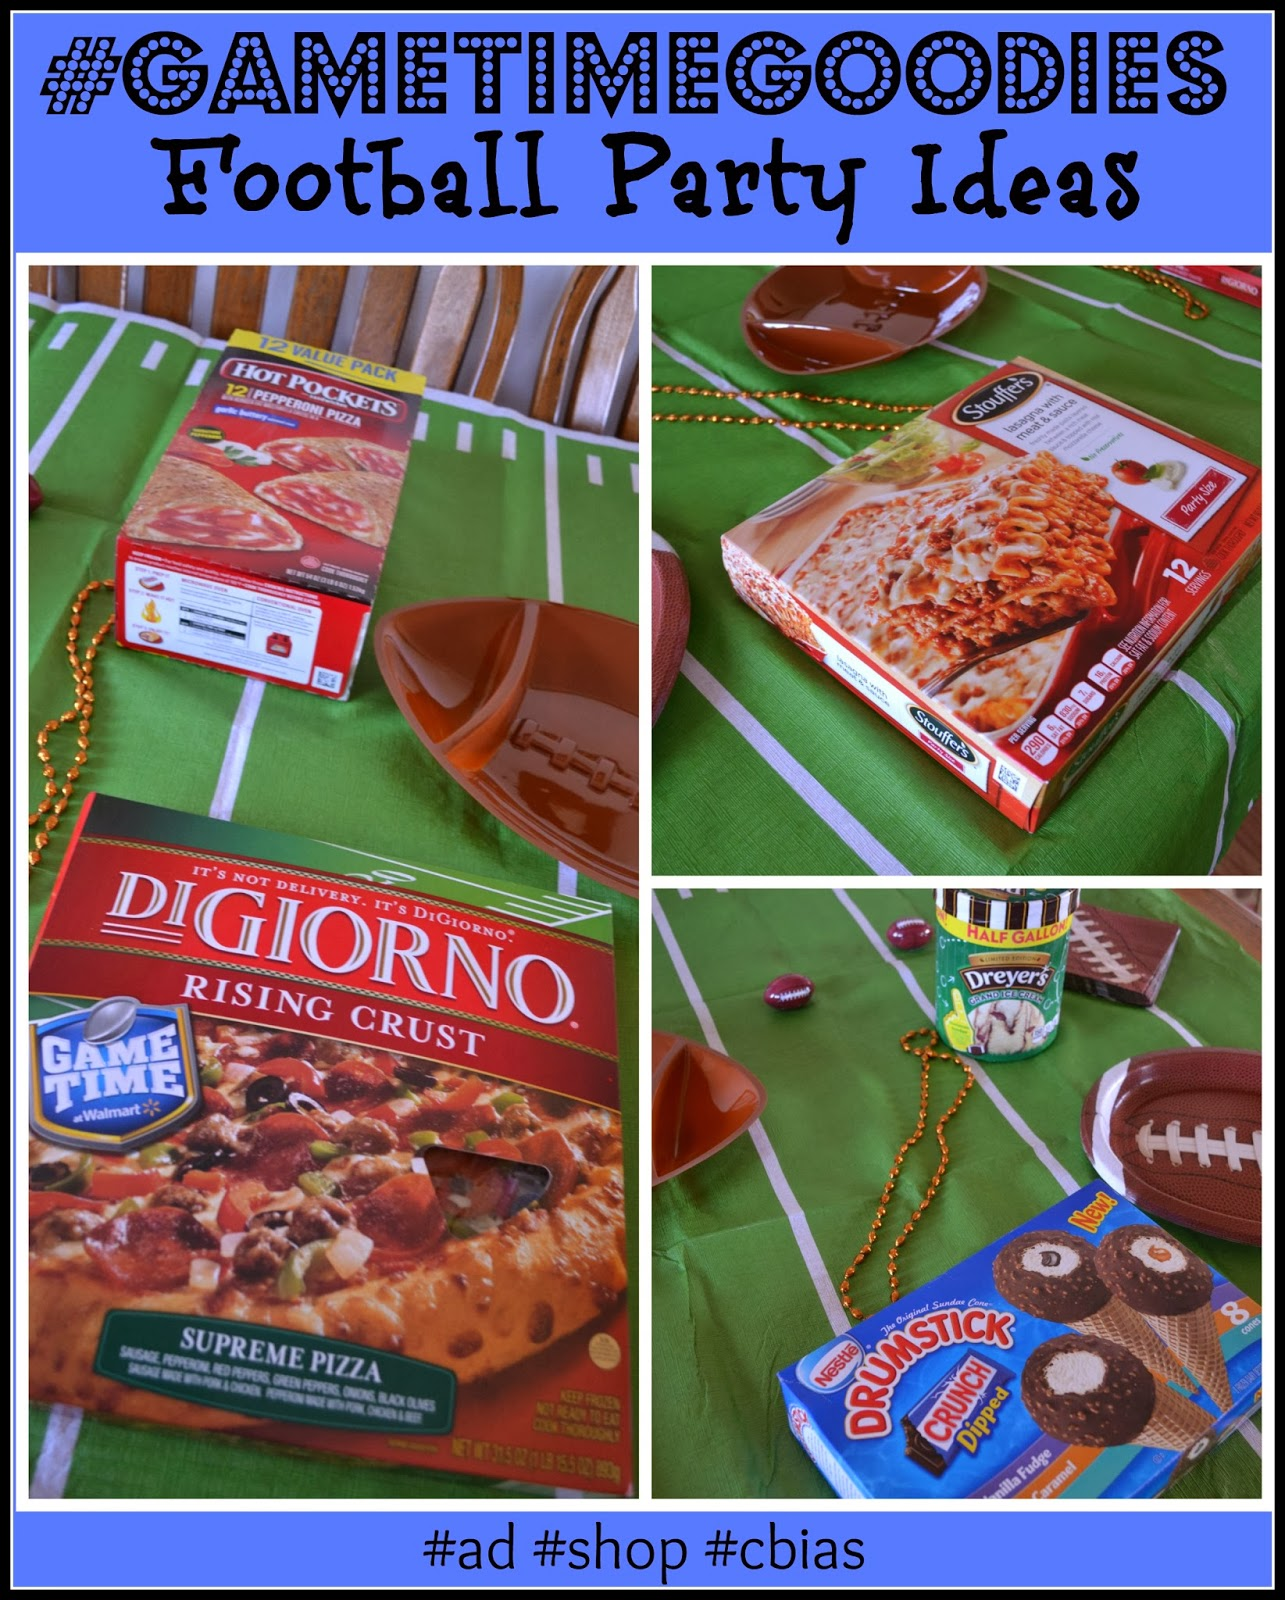 #GameTimeGoodies #ad #shop #cbias Nestle Game Time Goodies